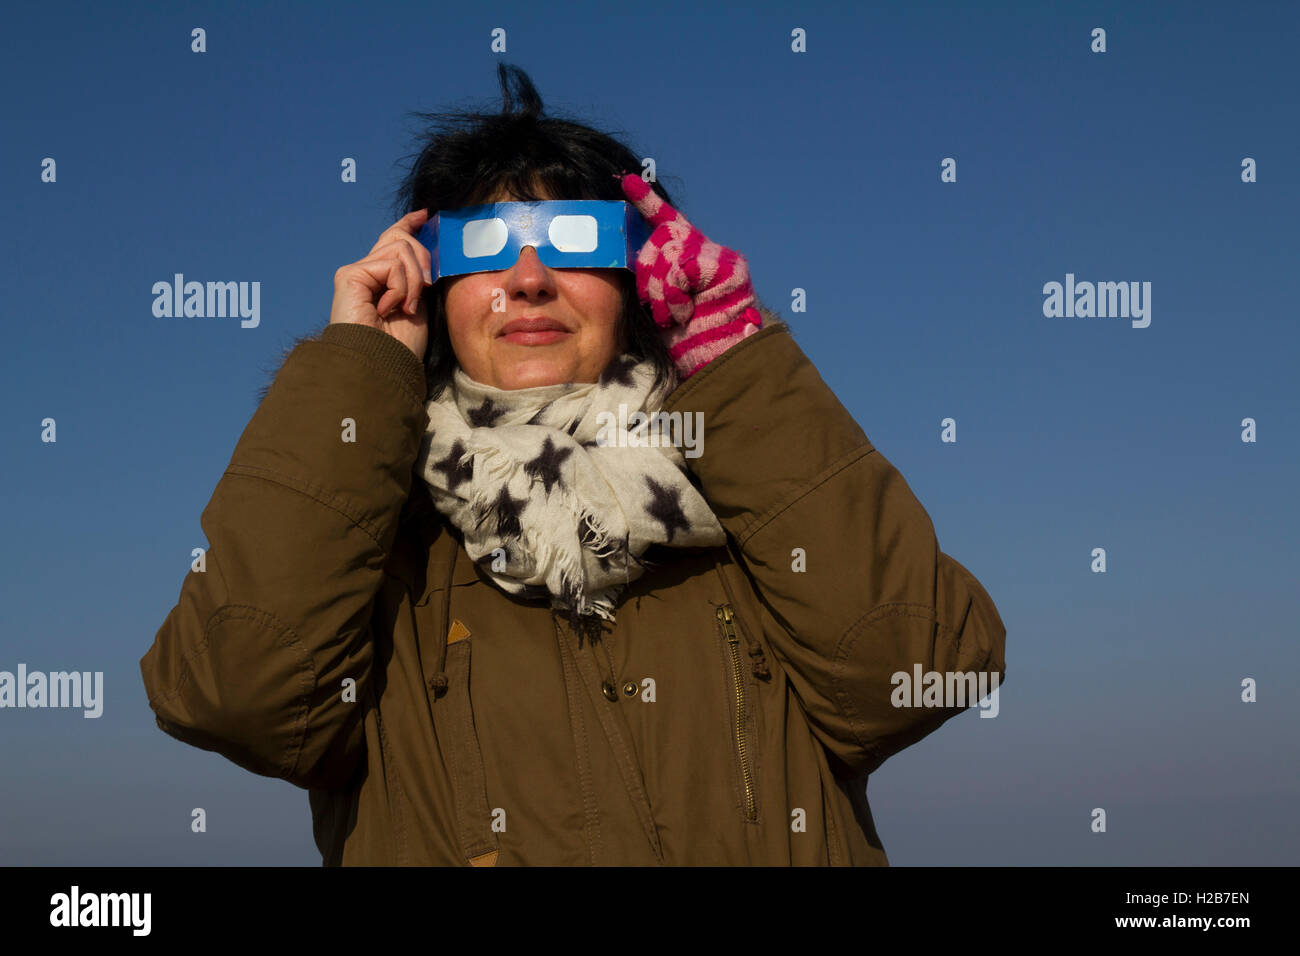 Woman with safety glasses to watch the spectacular partial solar eclipse, 20th Mar, 2015, Gower Peninsular, Wales, Stock Photo